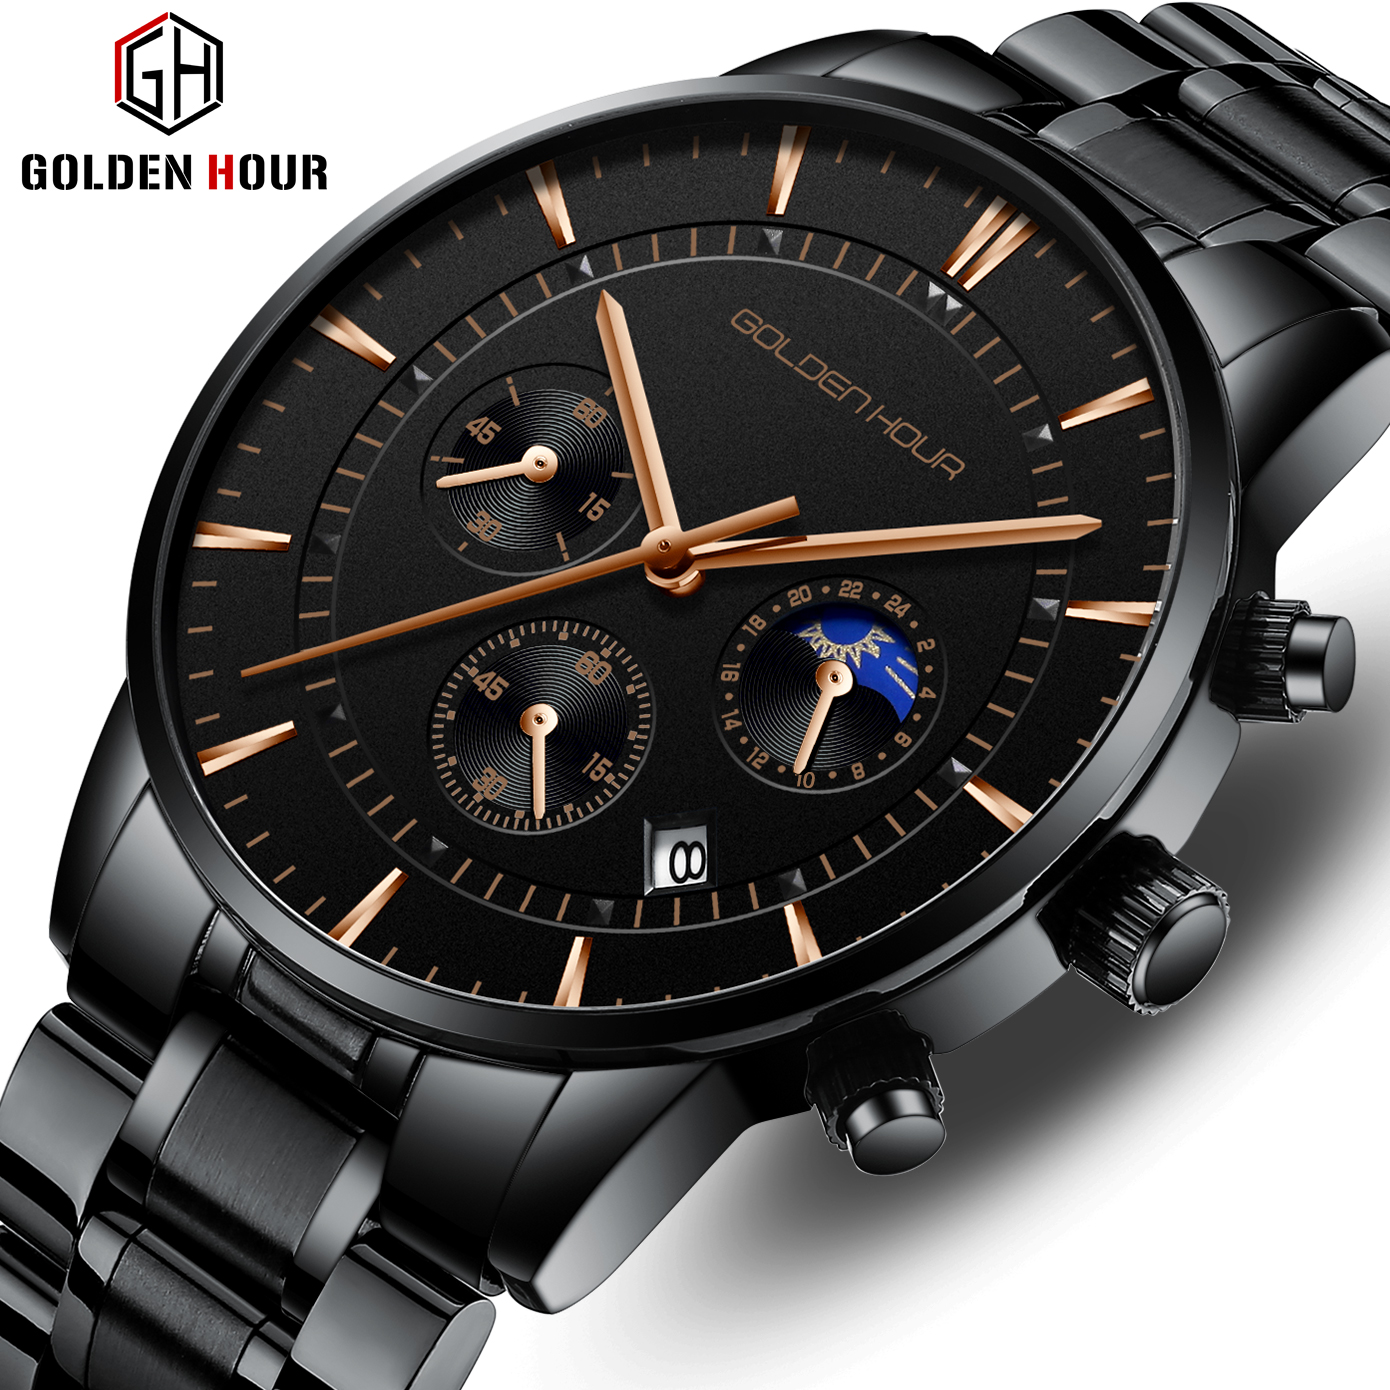 GOLDENHOUR Luxury Brand Men's Watches  Full Steel Business Wristwatch Waterproof Quartz Men Watch Male Clock Relogio Masculino